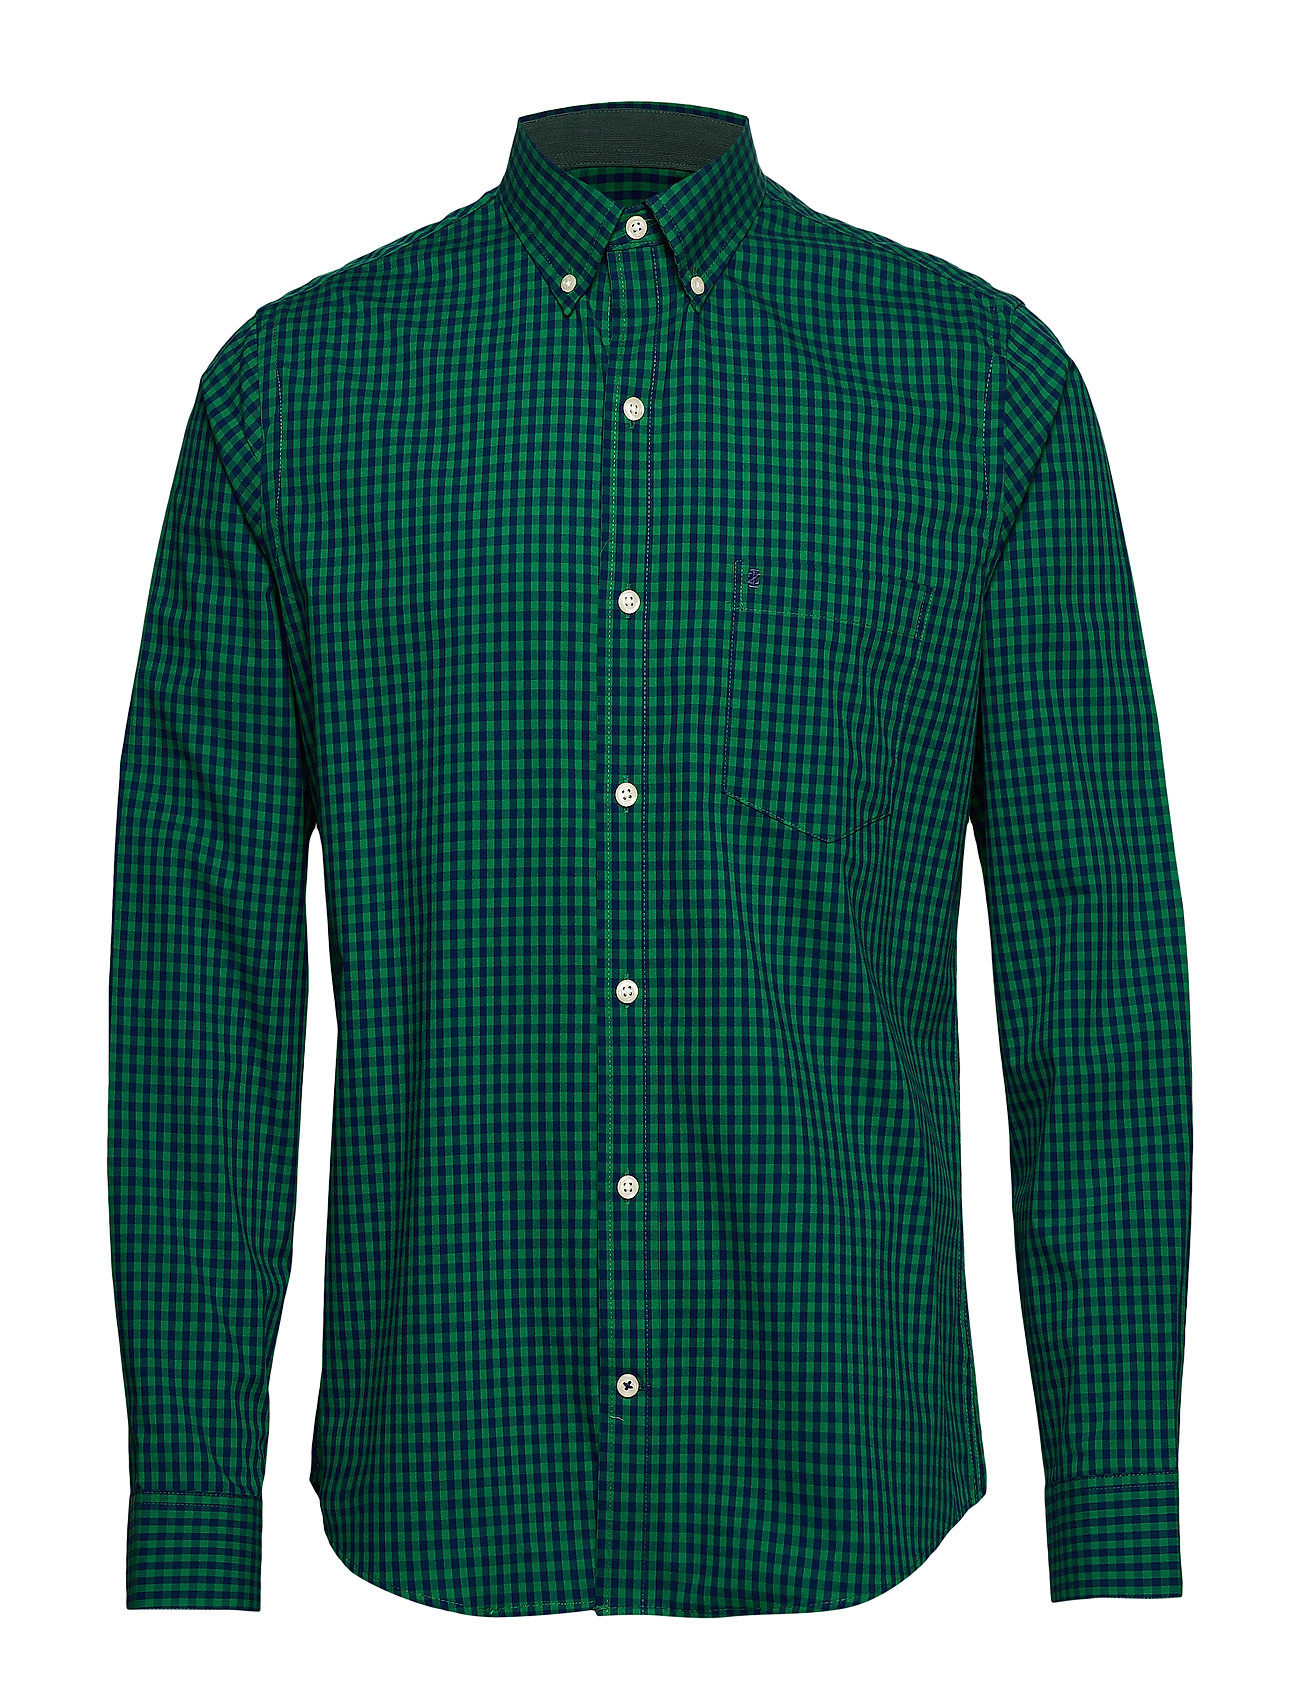 IZOD GINGHAM BD SHIRT - VERDANT GREEN